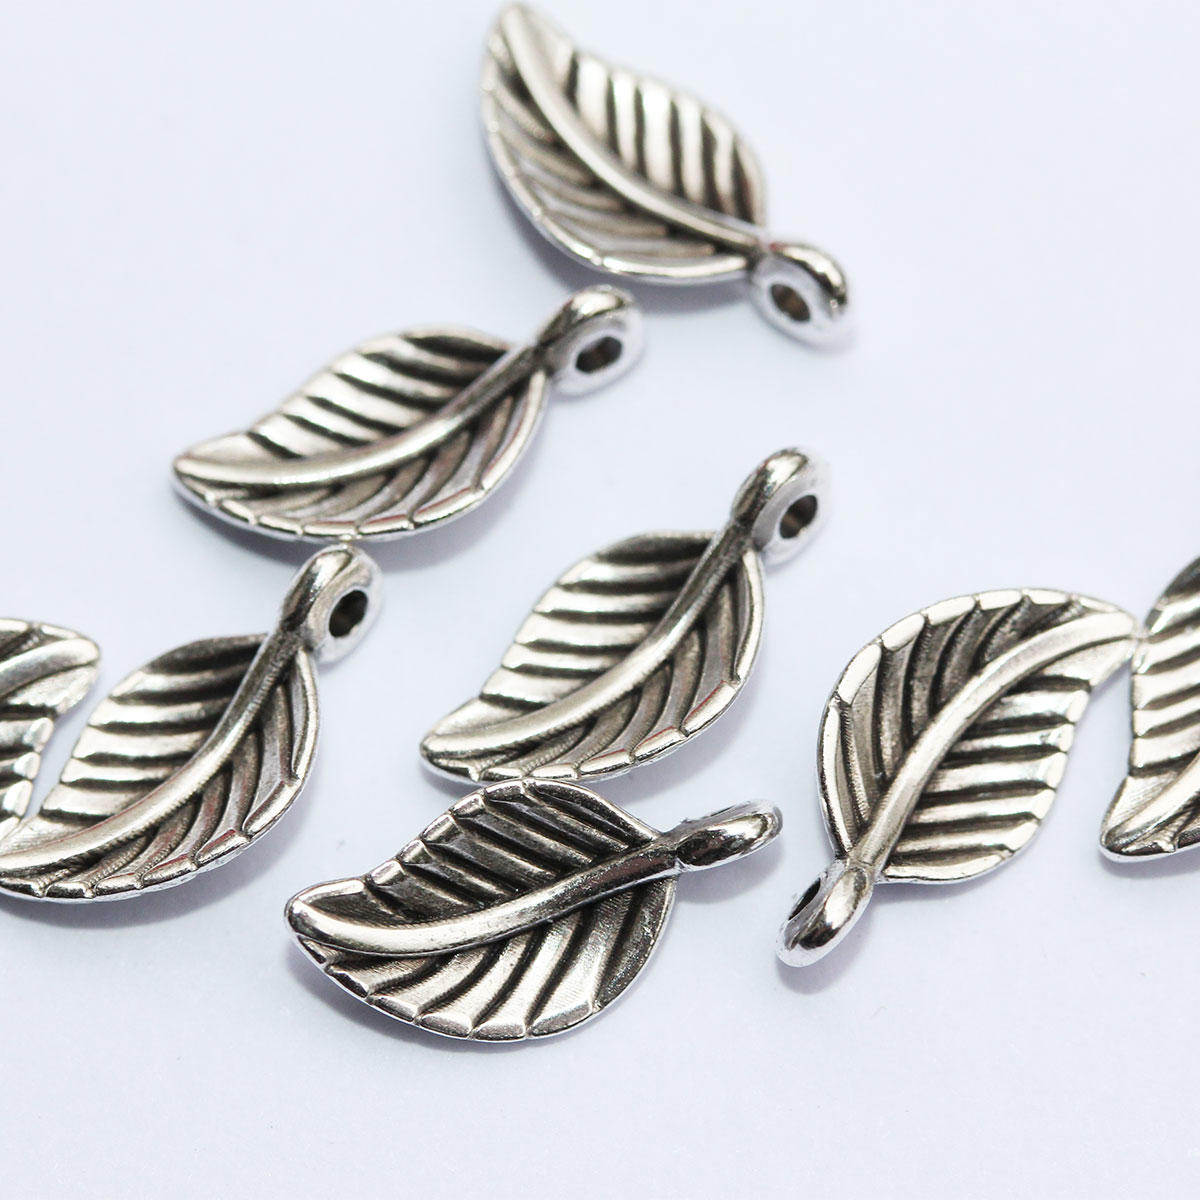 Antique Silver Delicate Leaf Charm